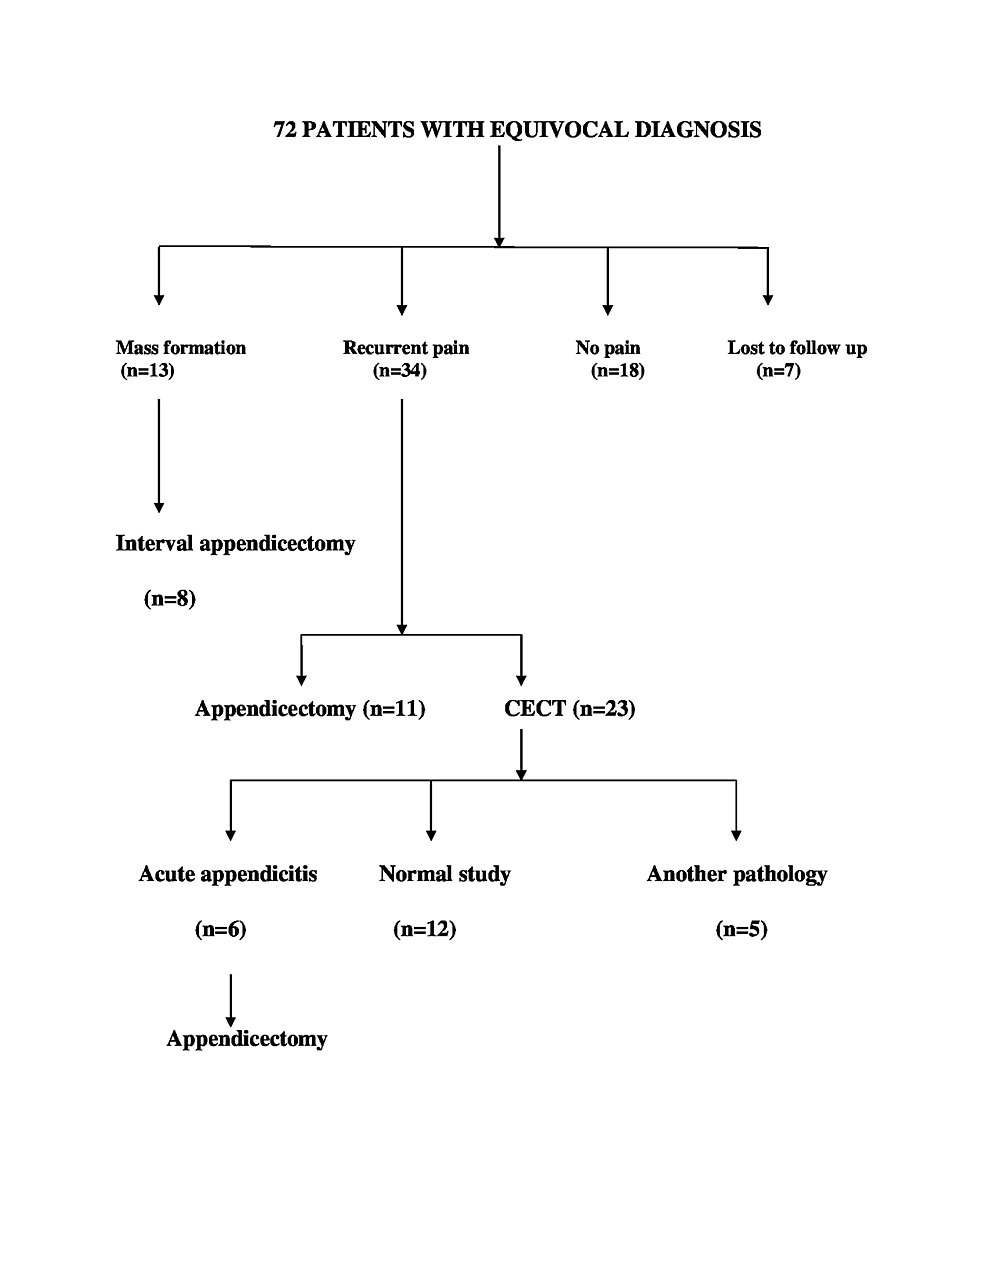 Scheme-of-outcome-and-management-of-patients-with-equivocal-diagnosis